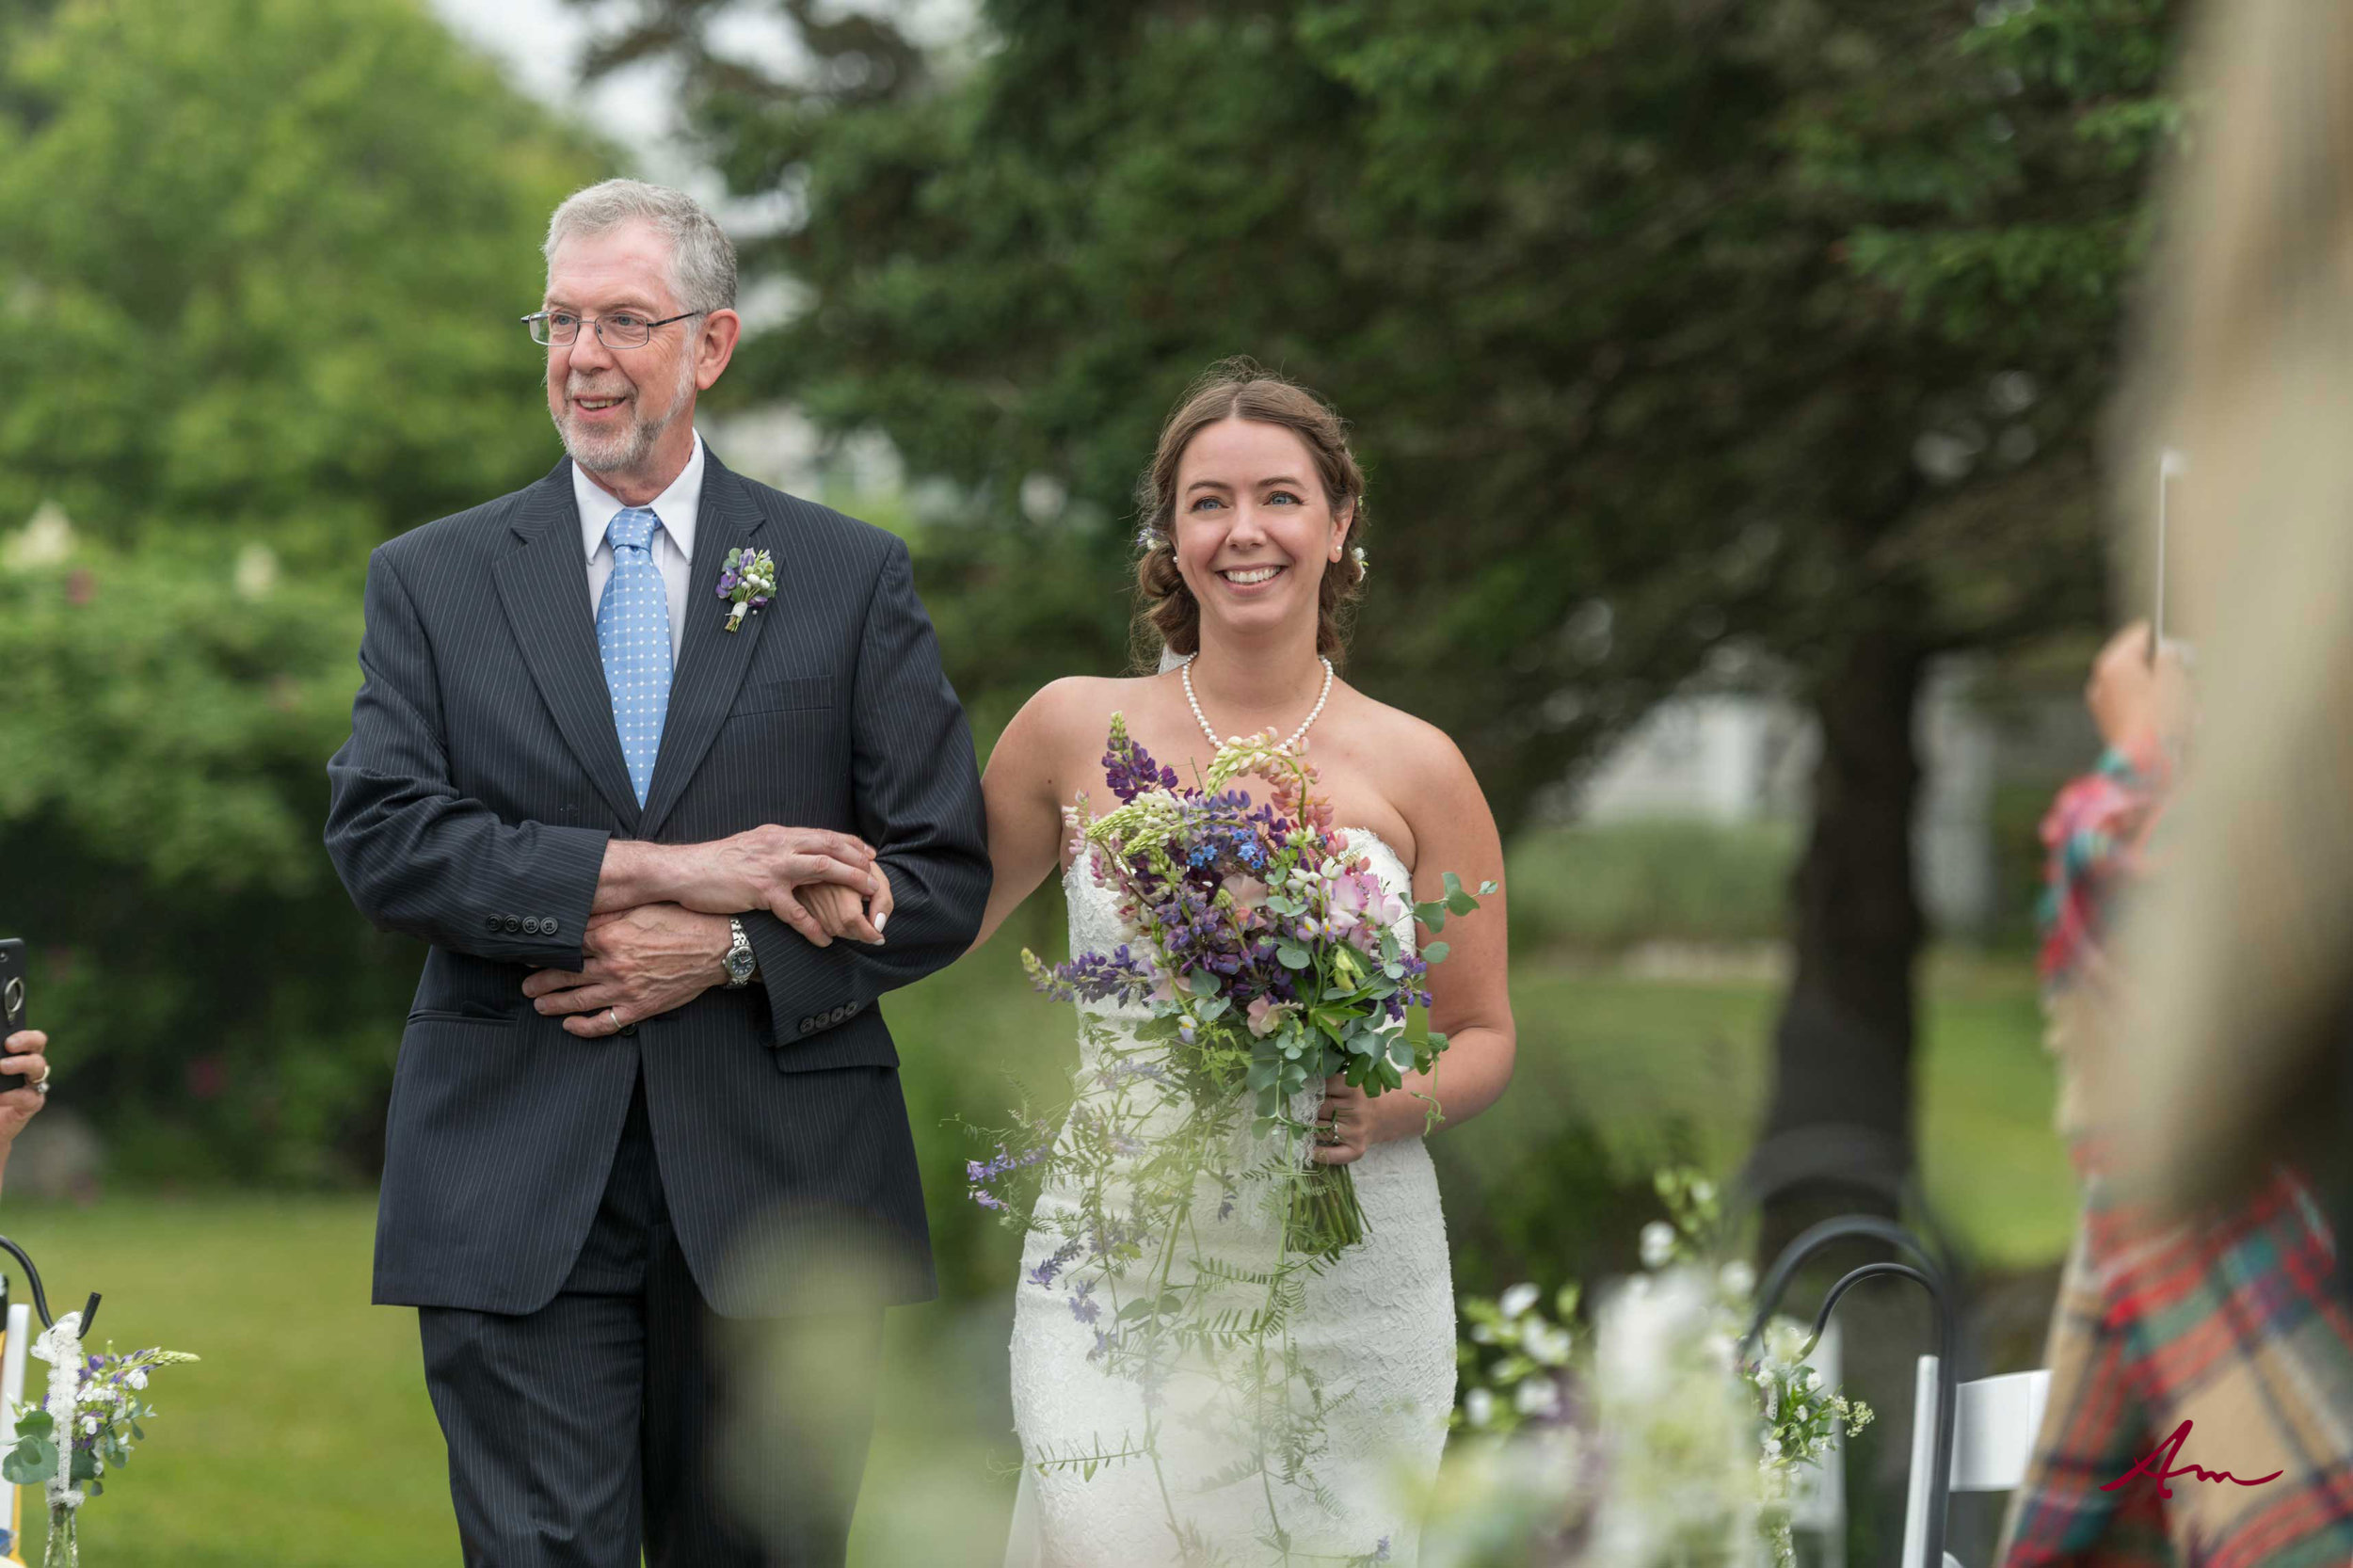 Walking down the aisle with her Dad.